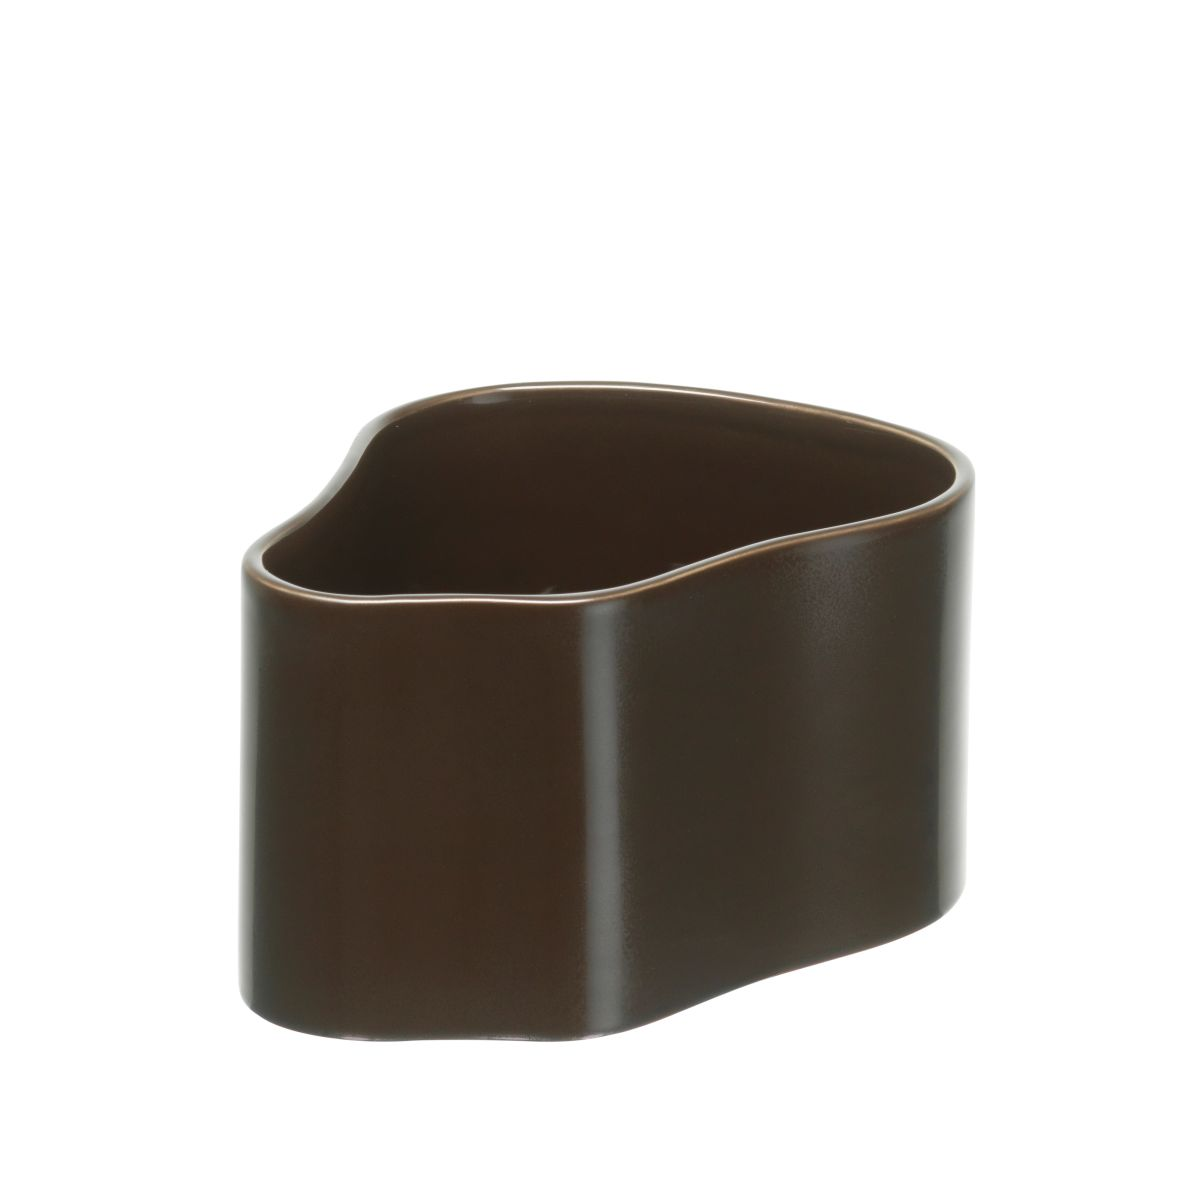 Plant pot shape A, size S, Dark brown gloss_F